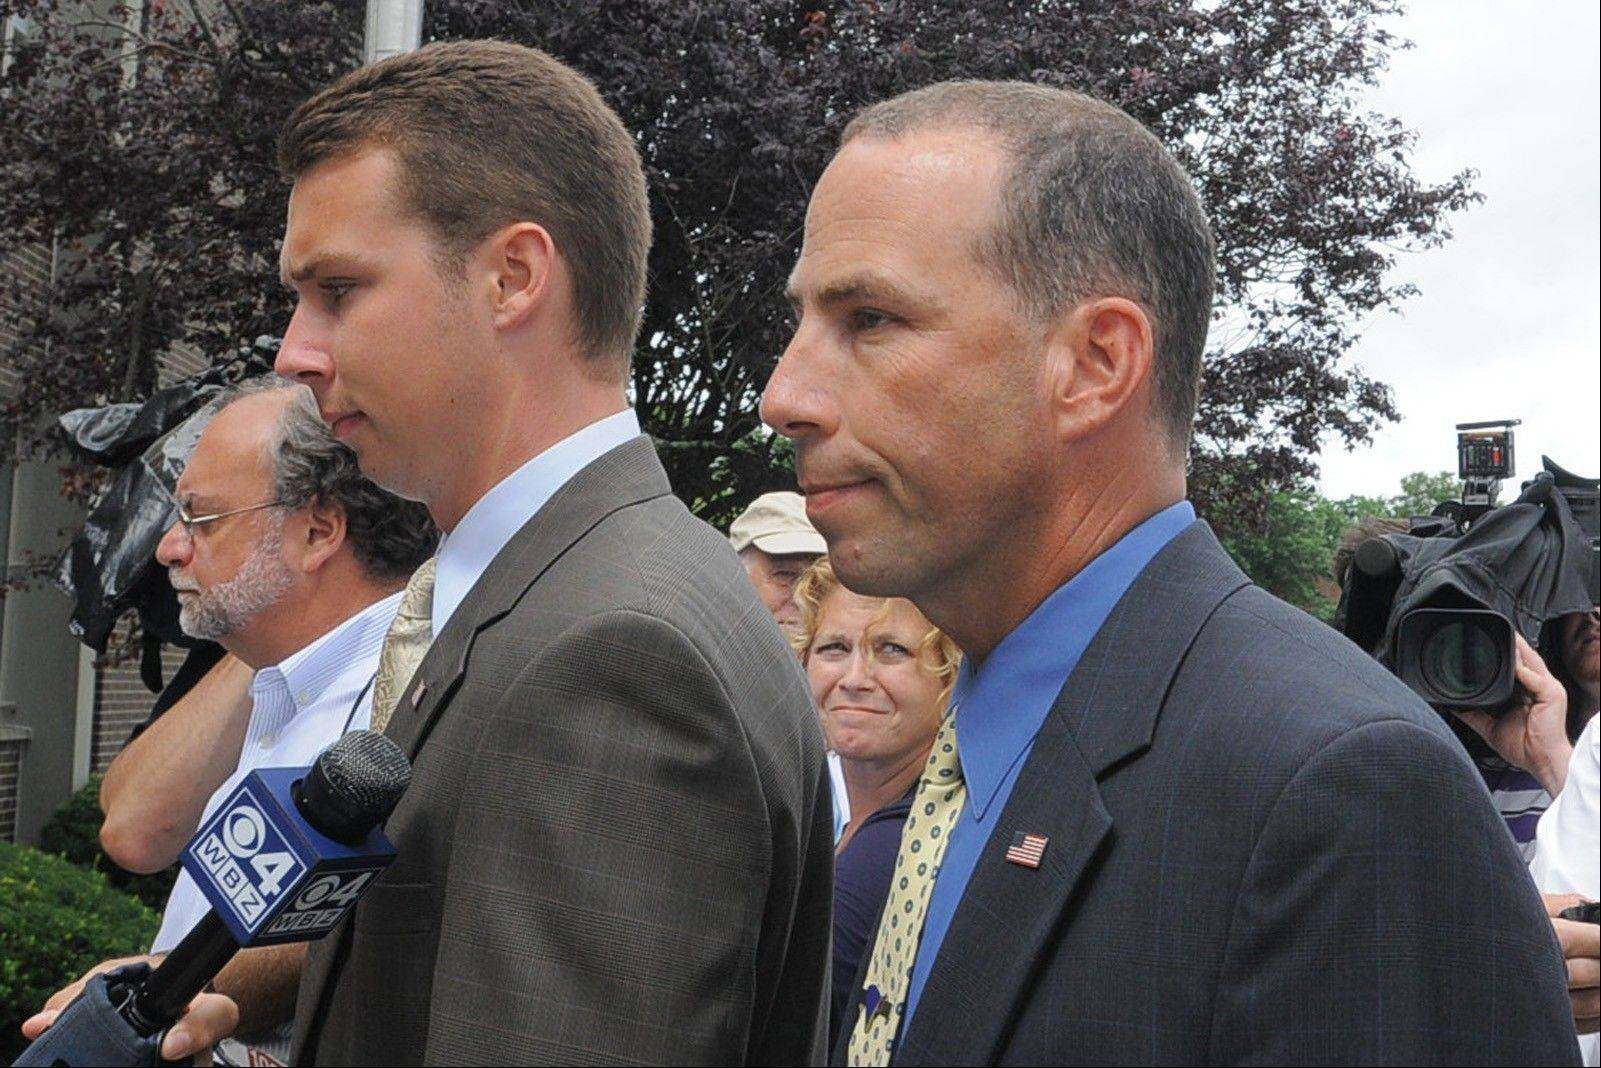 Massachusetts State Police Sgt. Sean Murphy, right, a tactical photographer, and his son Connor Patrick Murphy, arrive at State Police Headquarters for his hearing Tuesday to determine his duty status after he released images of the arrest of the Boston Marathon bombing suspect, in Framingham, Mass.